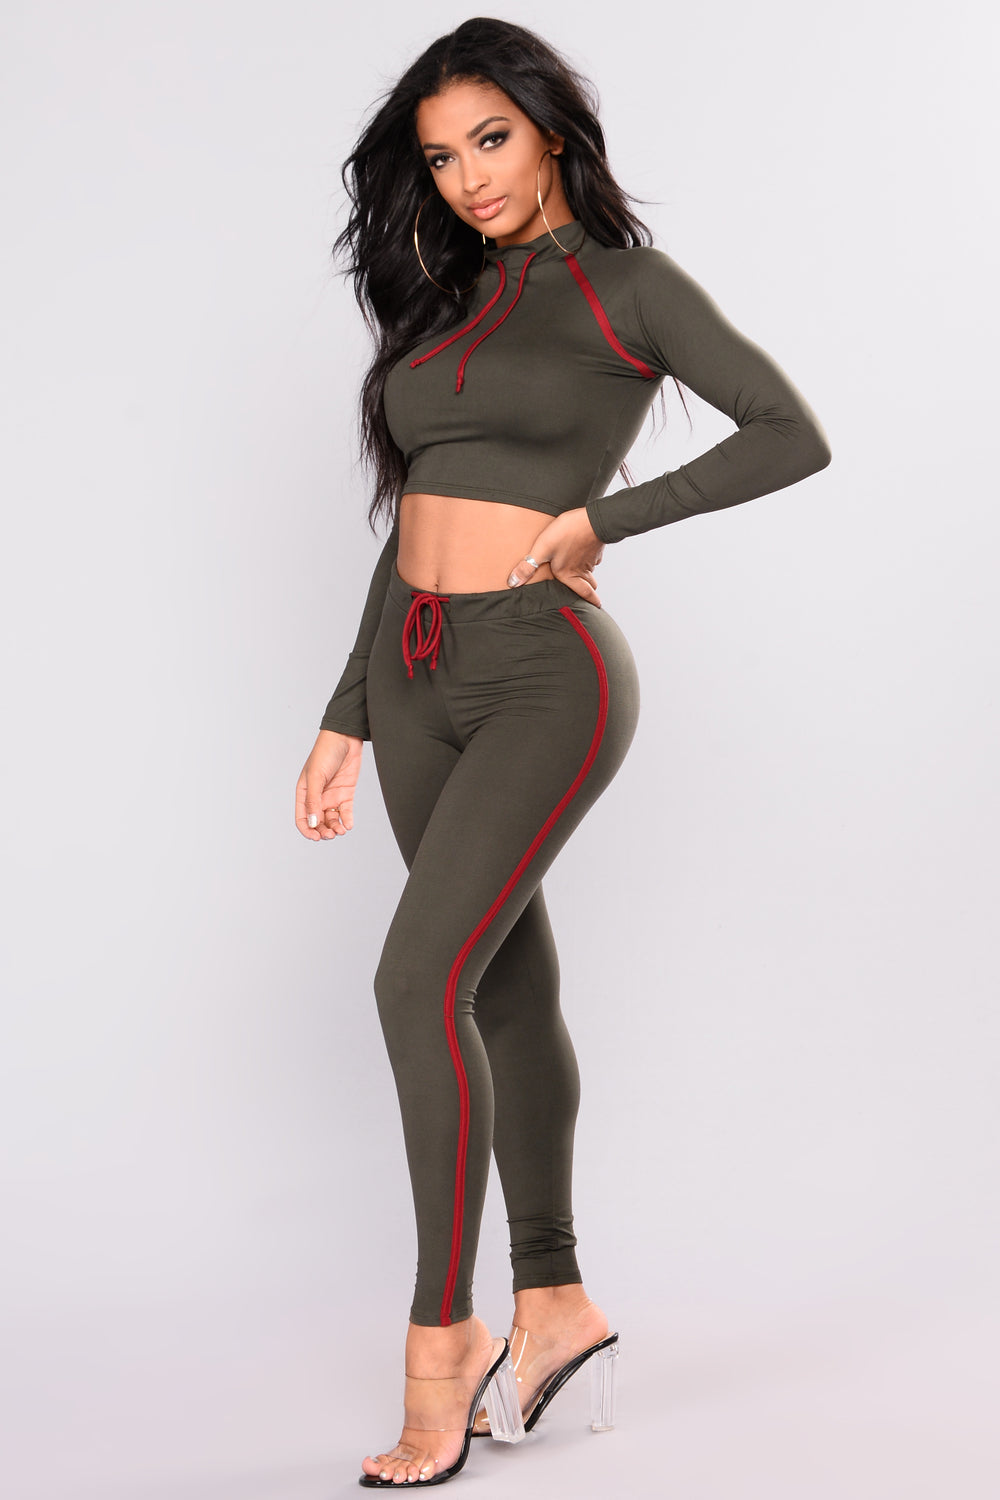 Kathleen Lounge Set - Olive/Burgundy